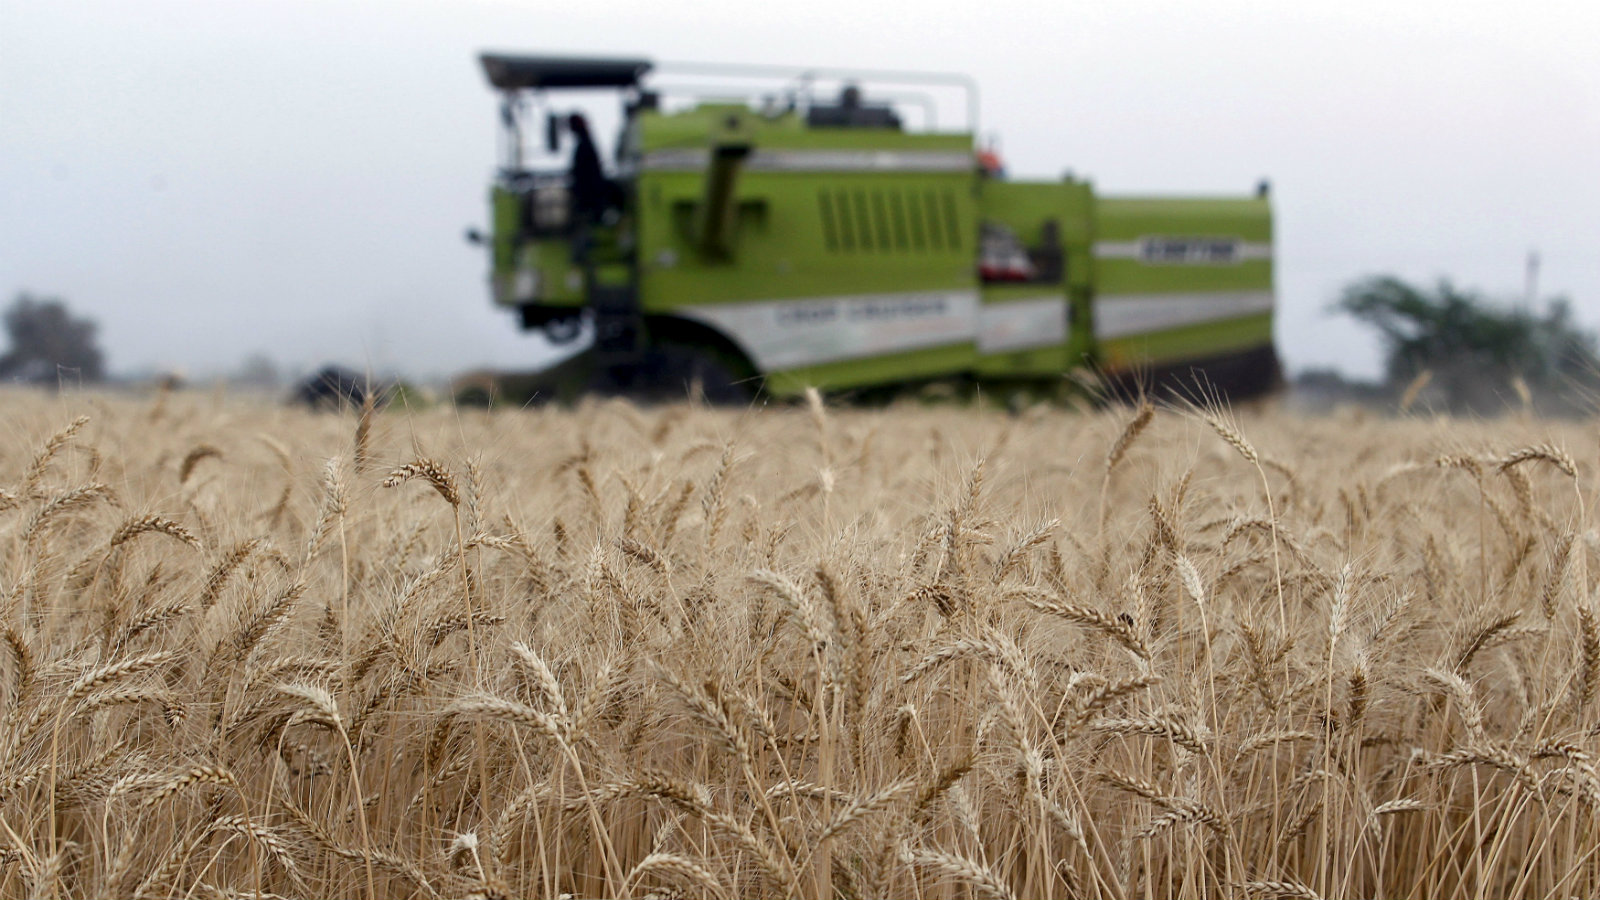 A harvester reaps wheat crop in a field on the outskirts of the western Indian city of Ahmedabad March 24, 2015. India is the world's biggest wheat producer after China.